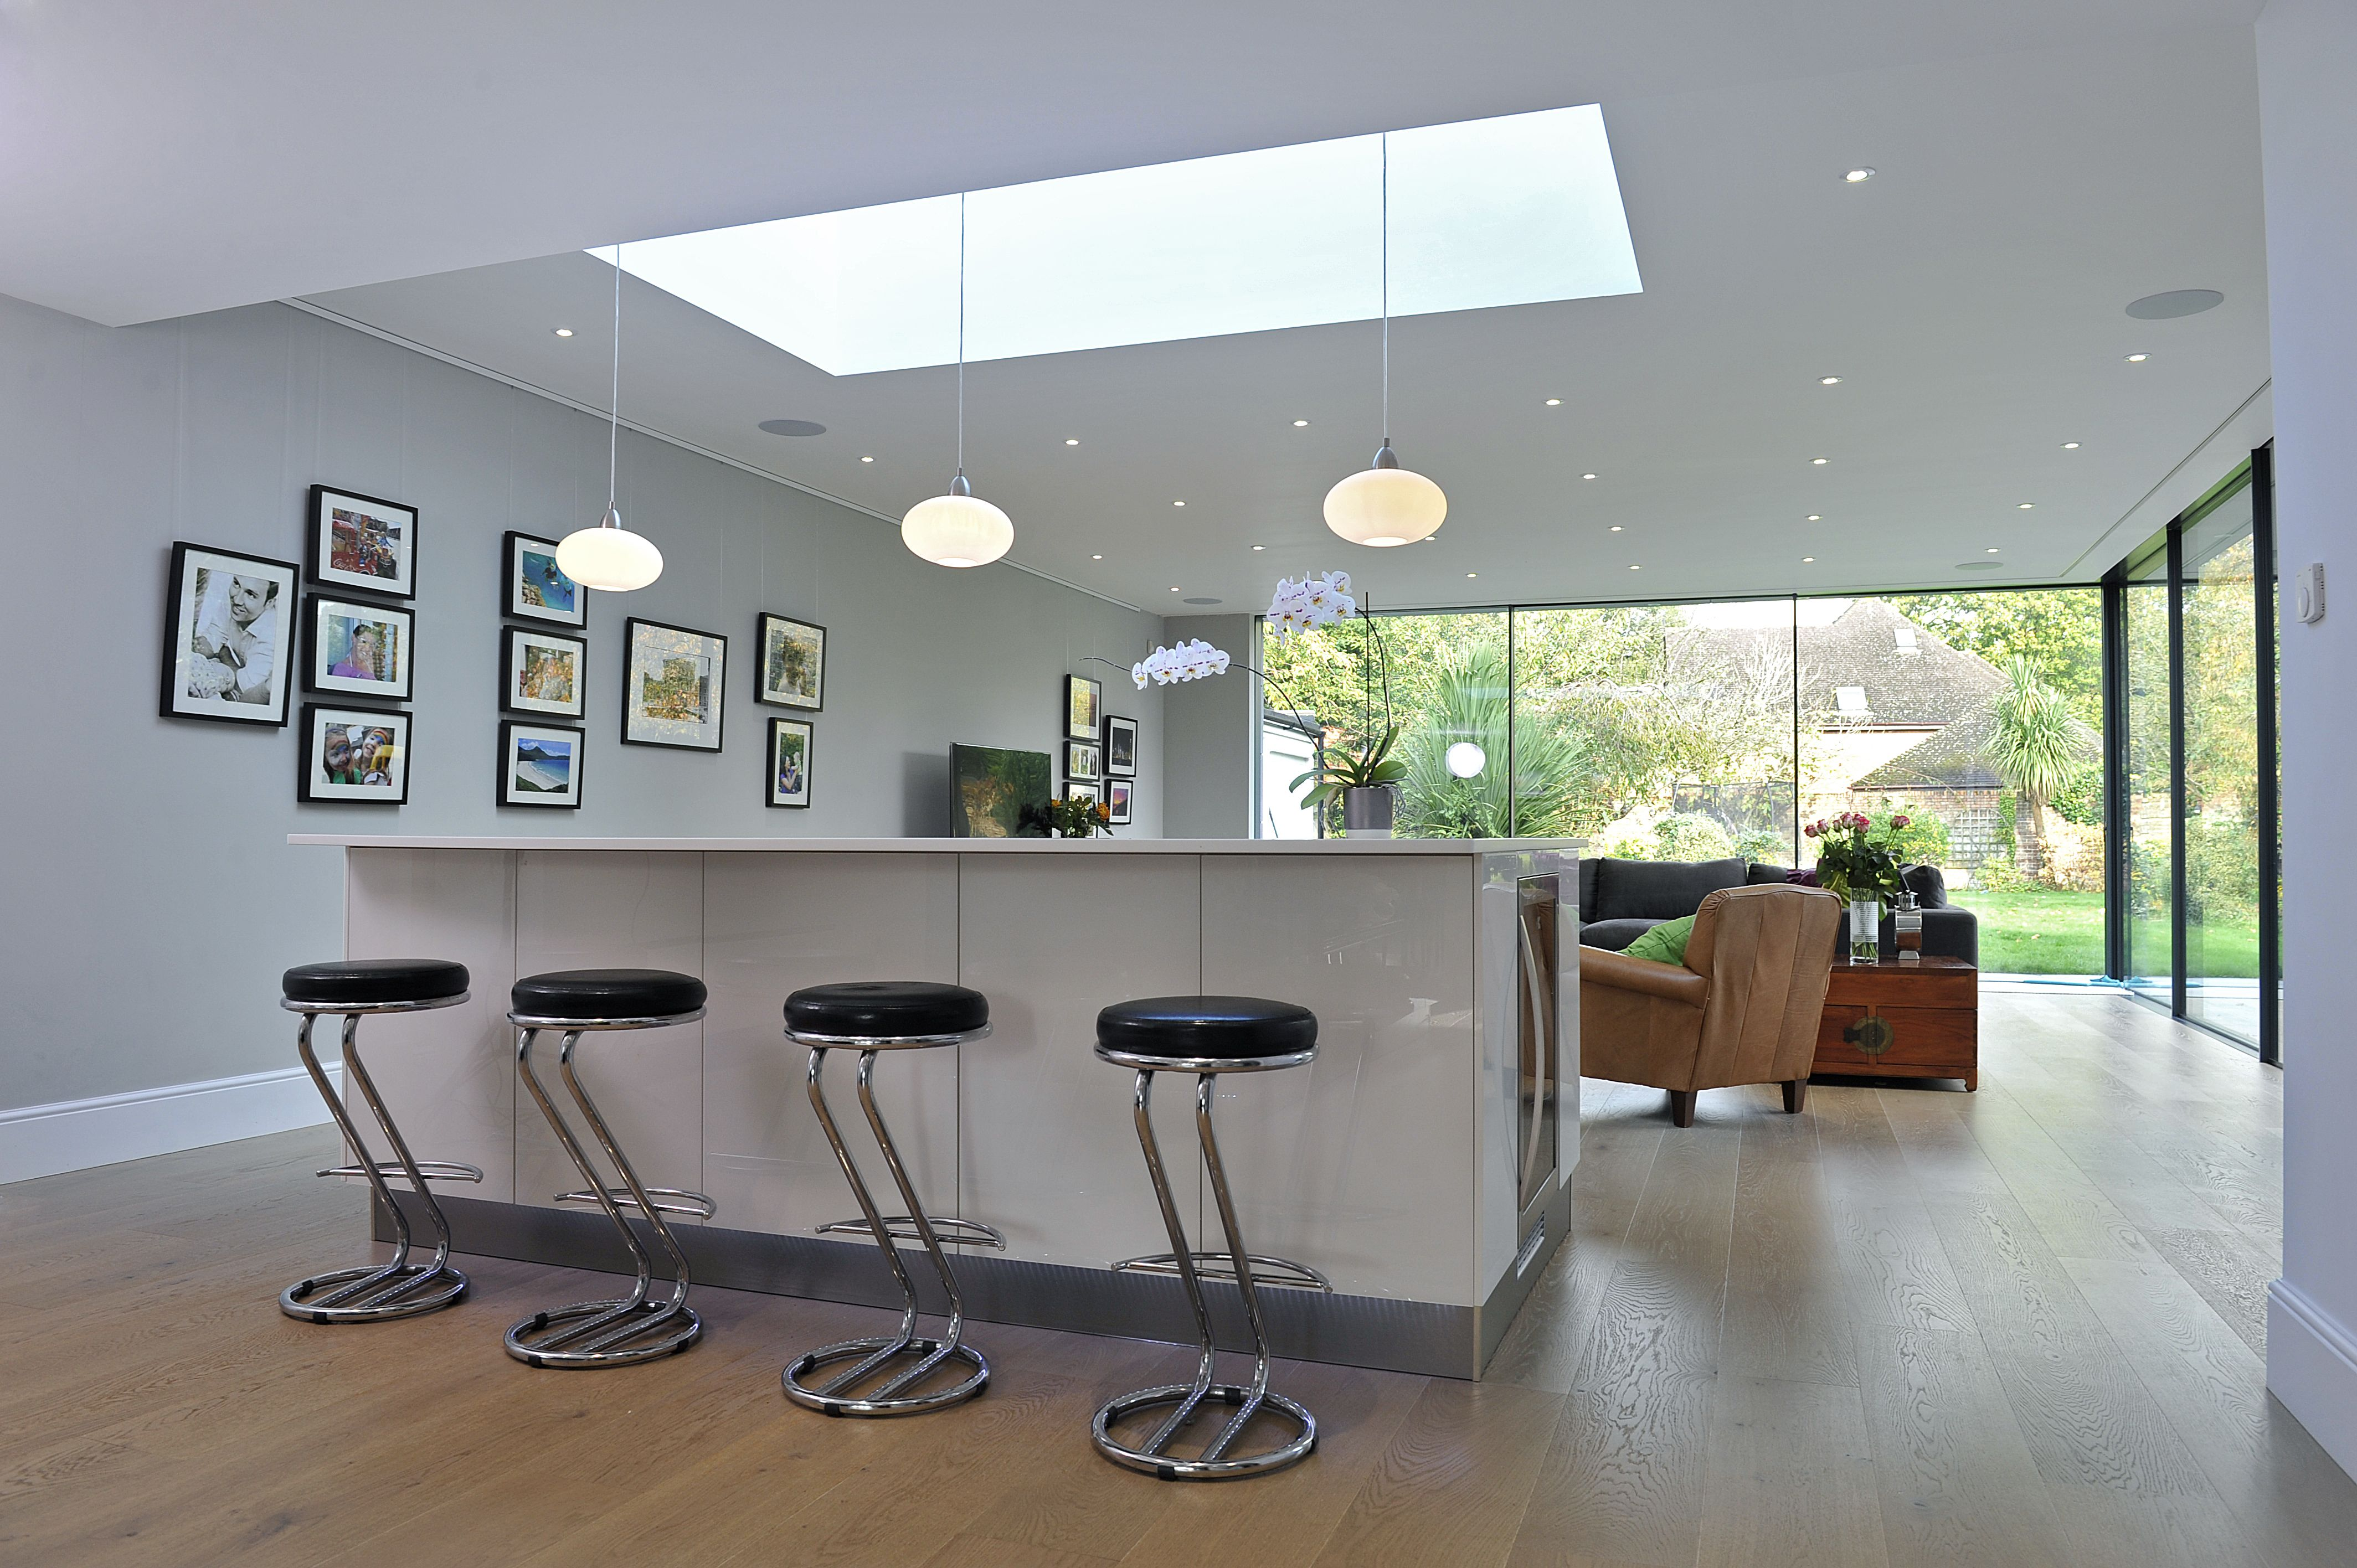 Kitchen Extension Ideas (Bi Fold Doors Skylight Kitchen Island) - Townhouse